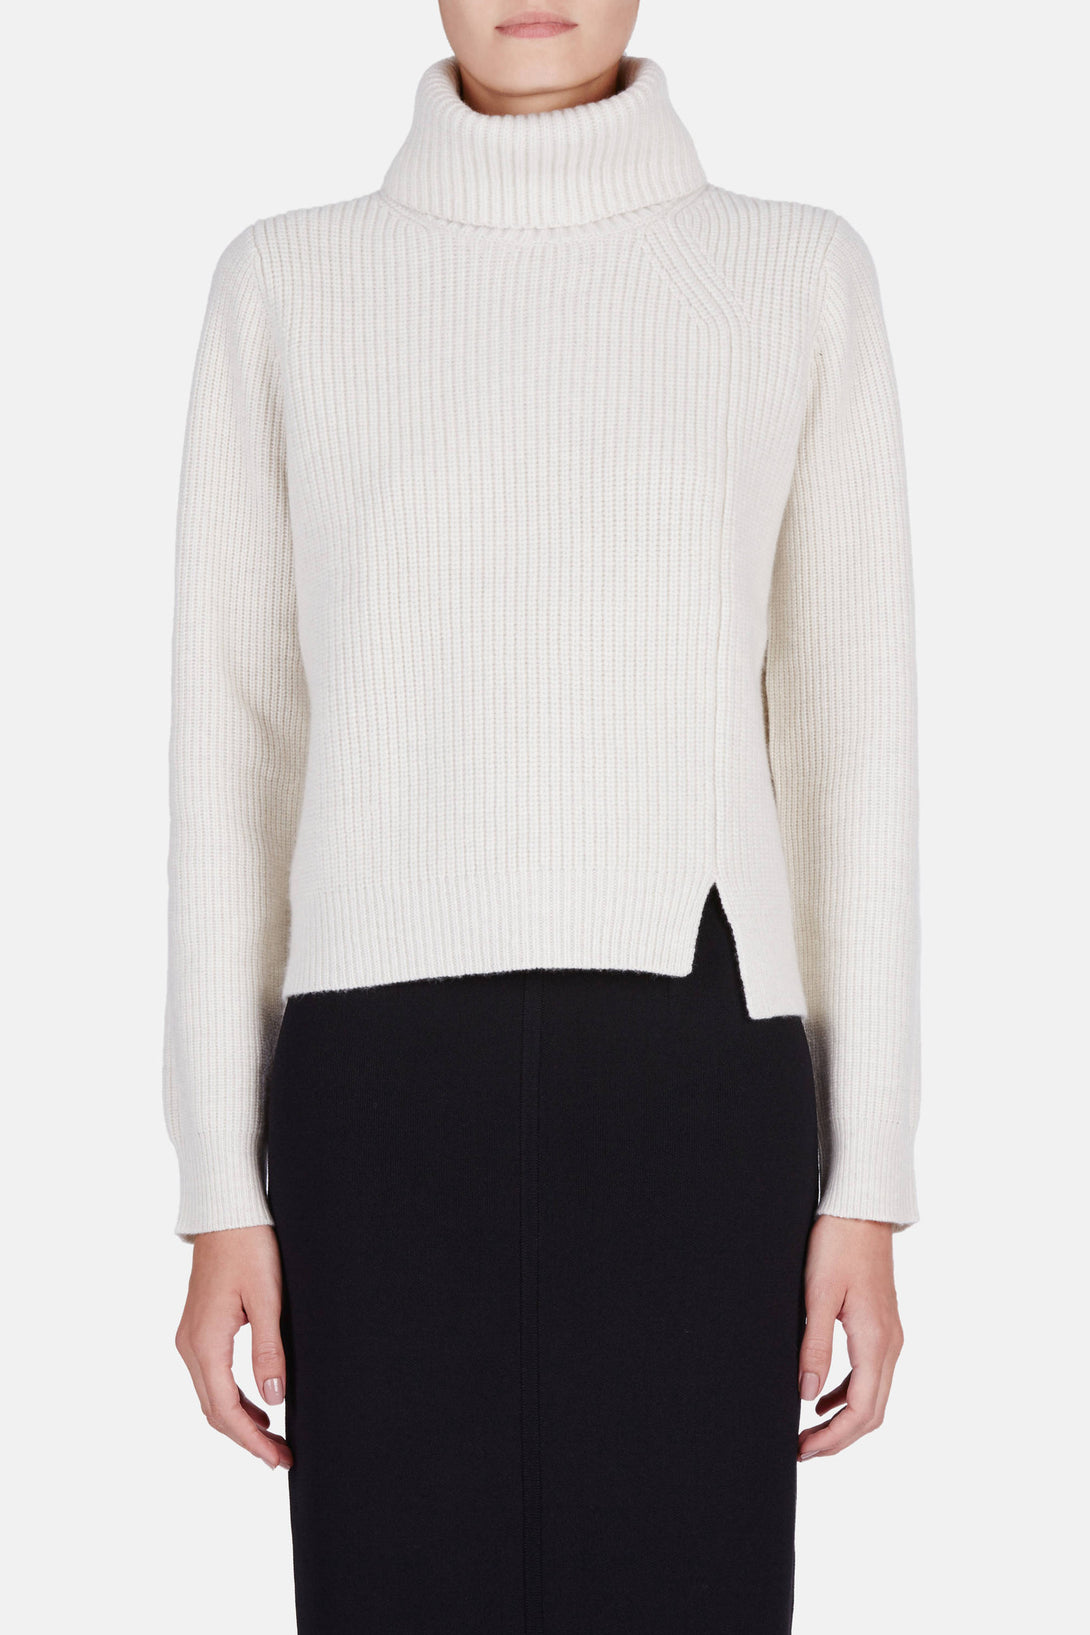 L/S Turtleneck w/Front Slit - Off White